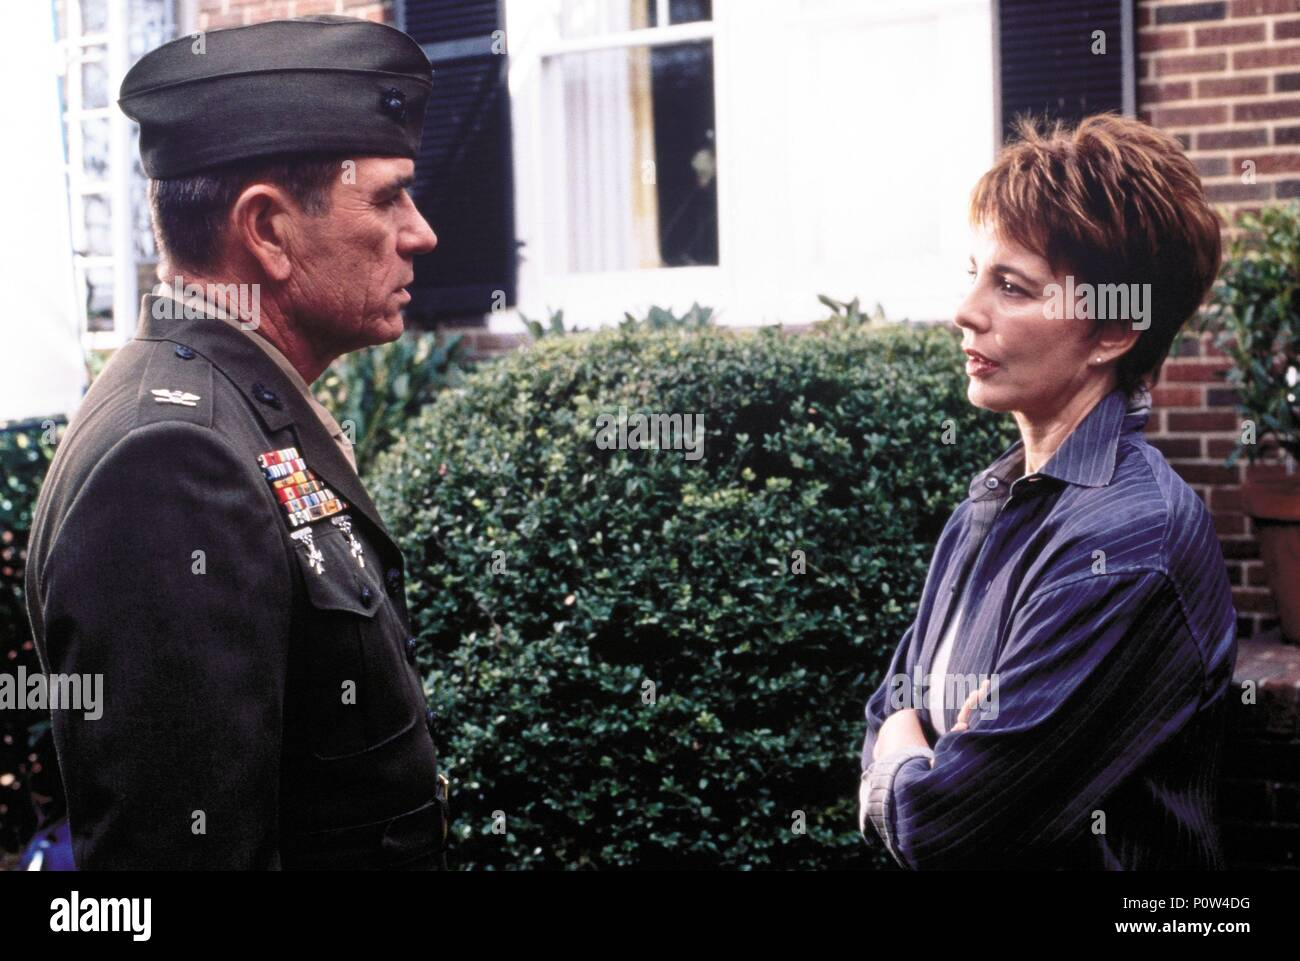 Original Film Title: RULES OF ENGAGEMENT.  English Title: RULES OF ENGAGEMENT.  Film Director: WILLIAM FRIEDKIN.  Year: 2000.  Stars: ANNE ARCHER; TOMMY LEE JONES. Credit: SEVEN ARTS PICTURES/PARAMOUNT PICTURES / EMERSON, SAM / Album - Stock Image